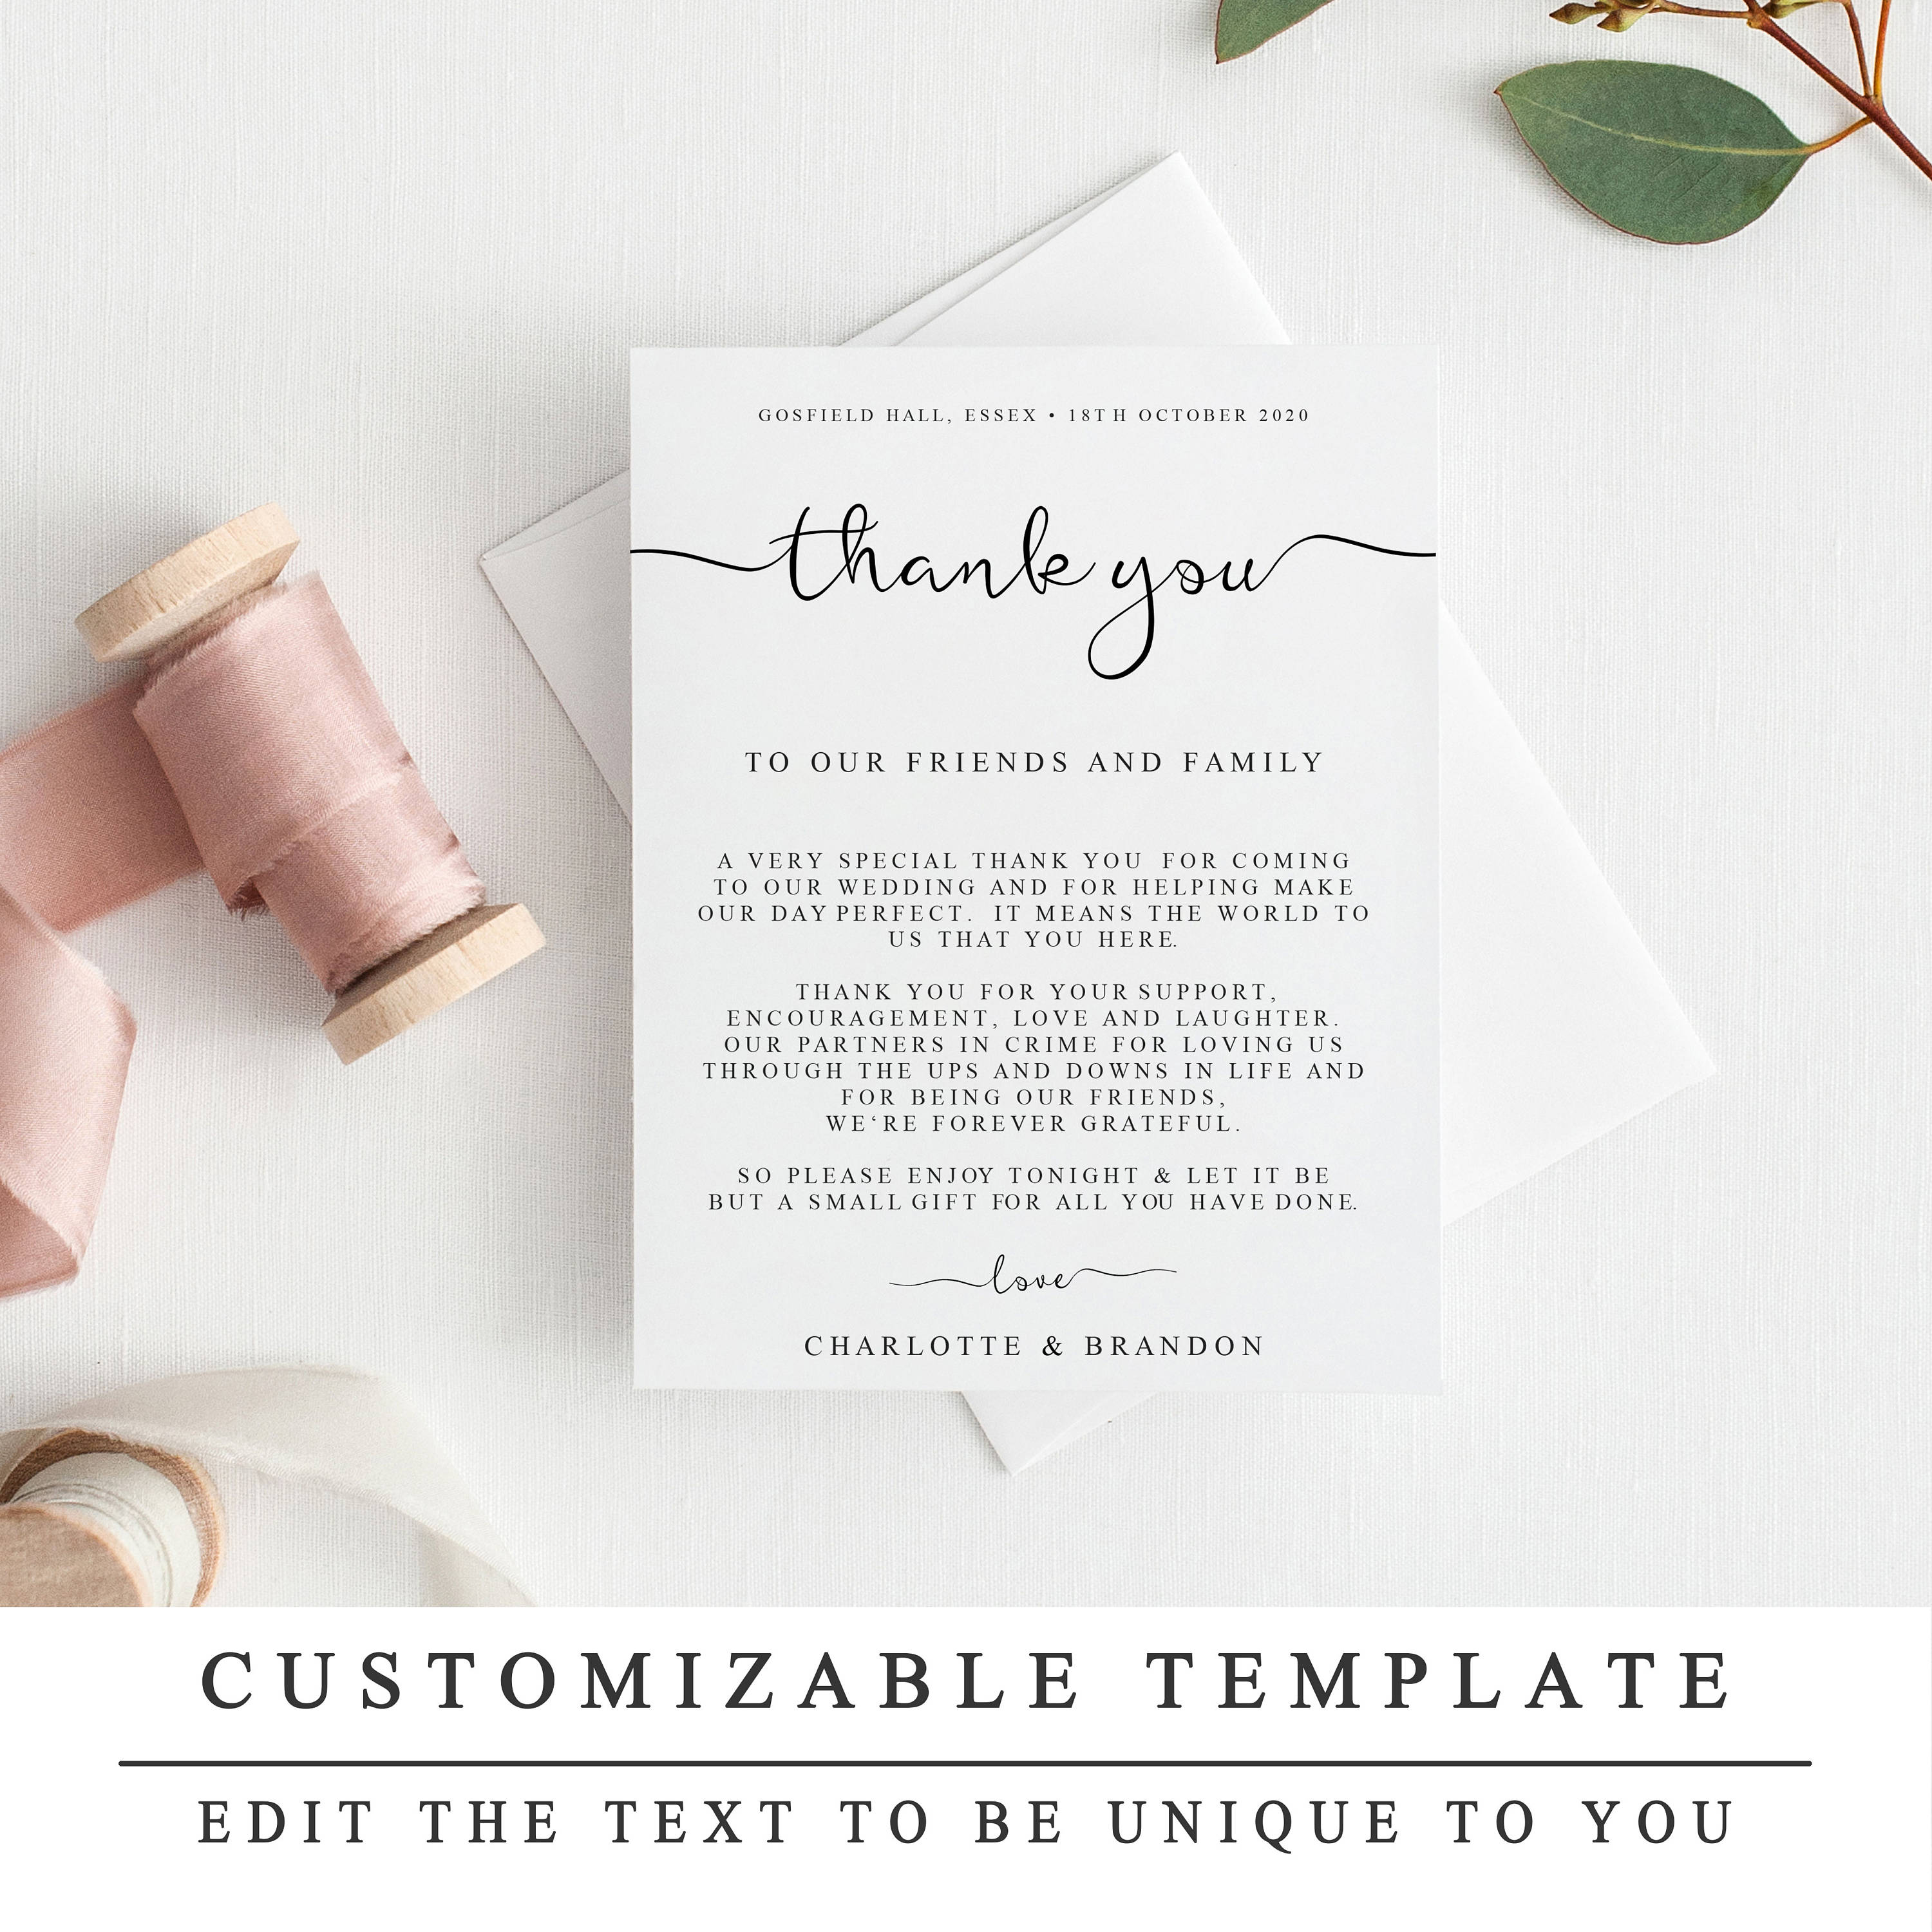 diy thank you card template wedding thank you cards etsy. Black Bedroom Furniture Sets. Home Design Ideas